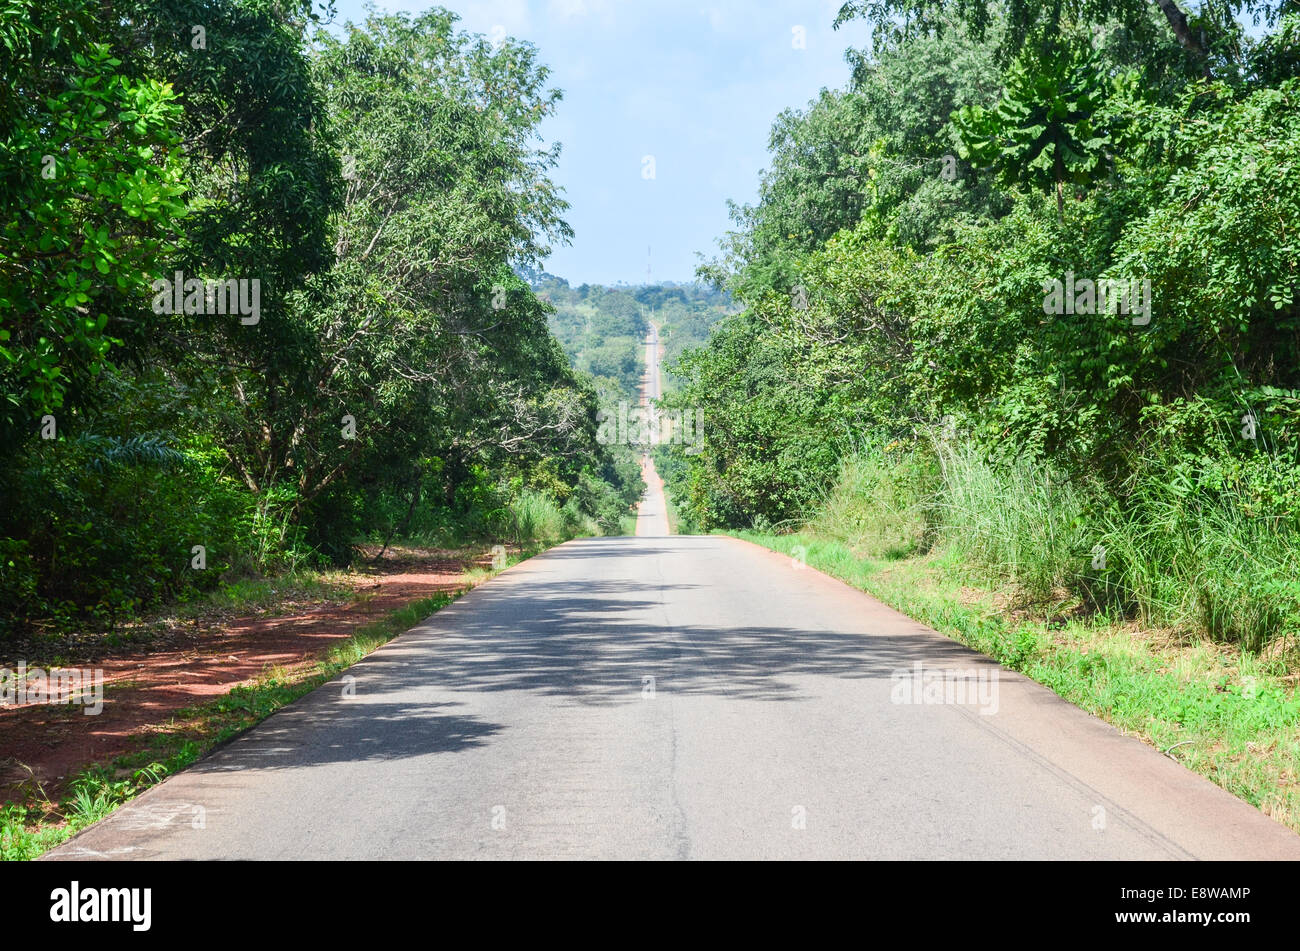 Rural Nigeria, long straight road in Edo state - Stock Image